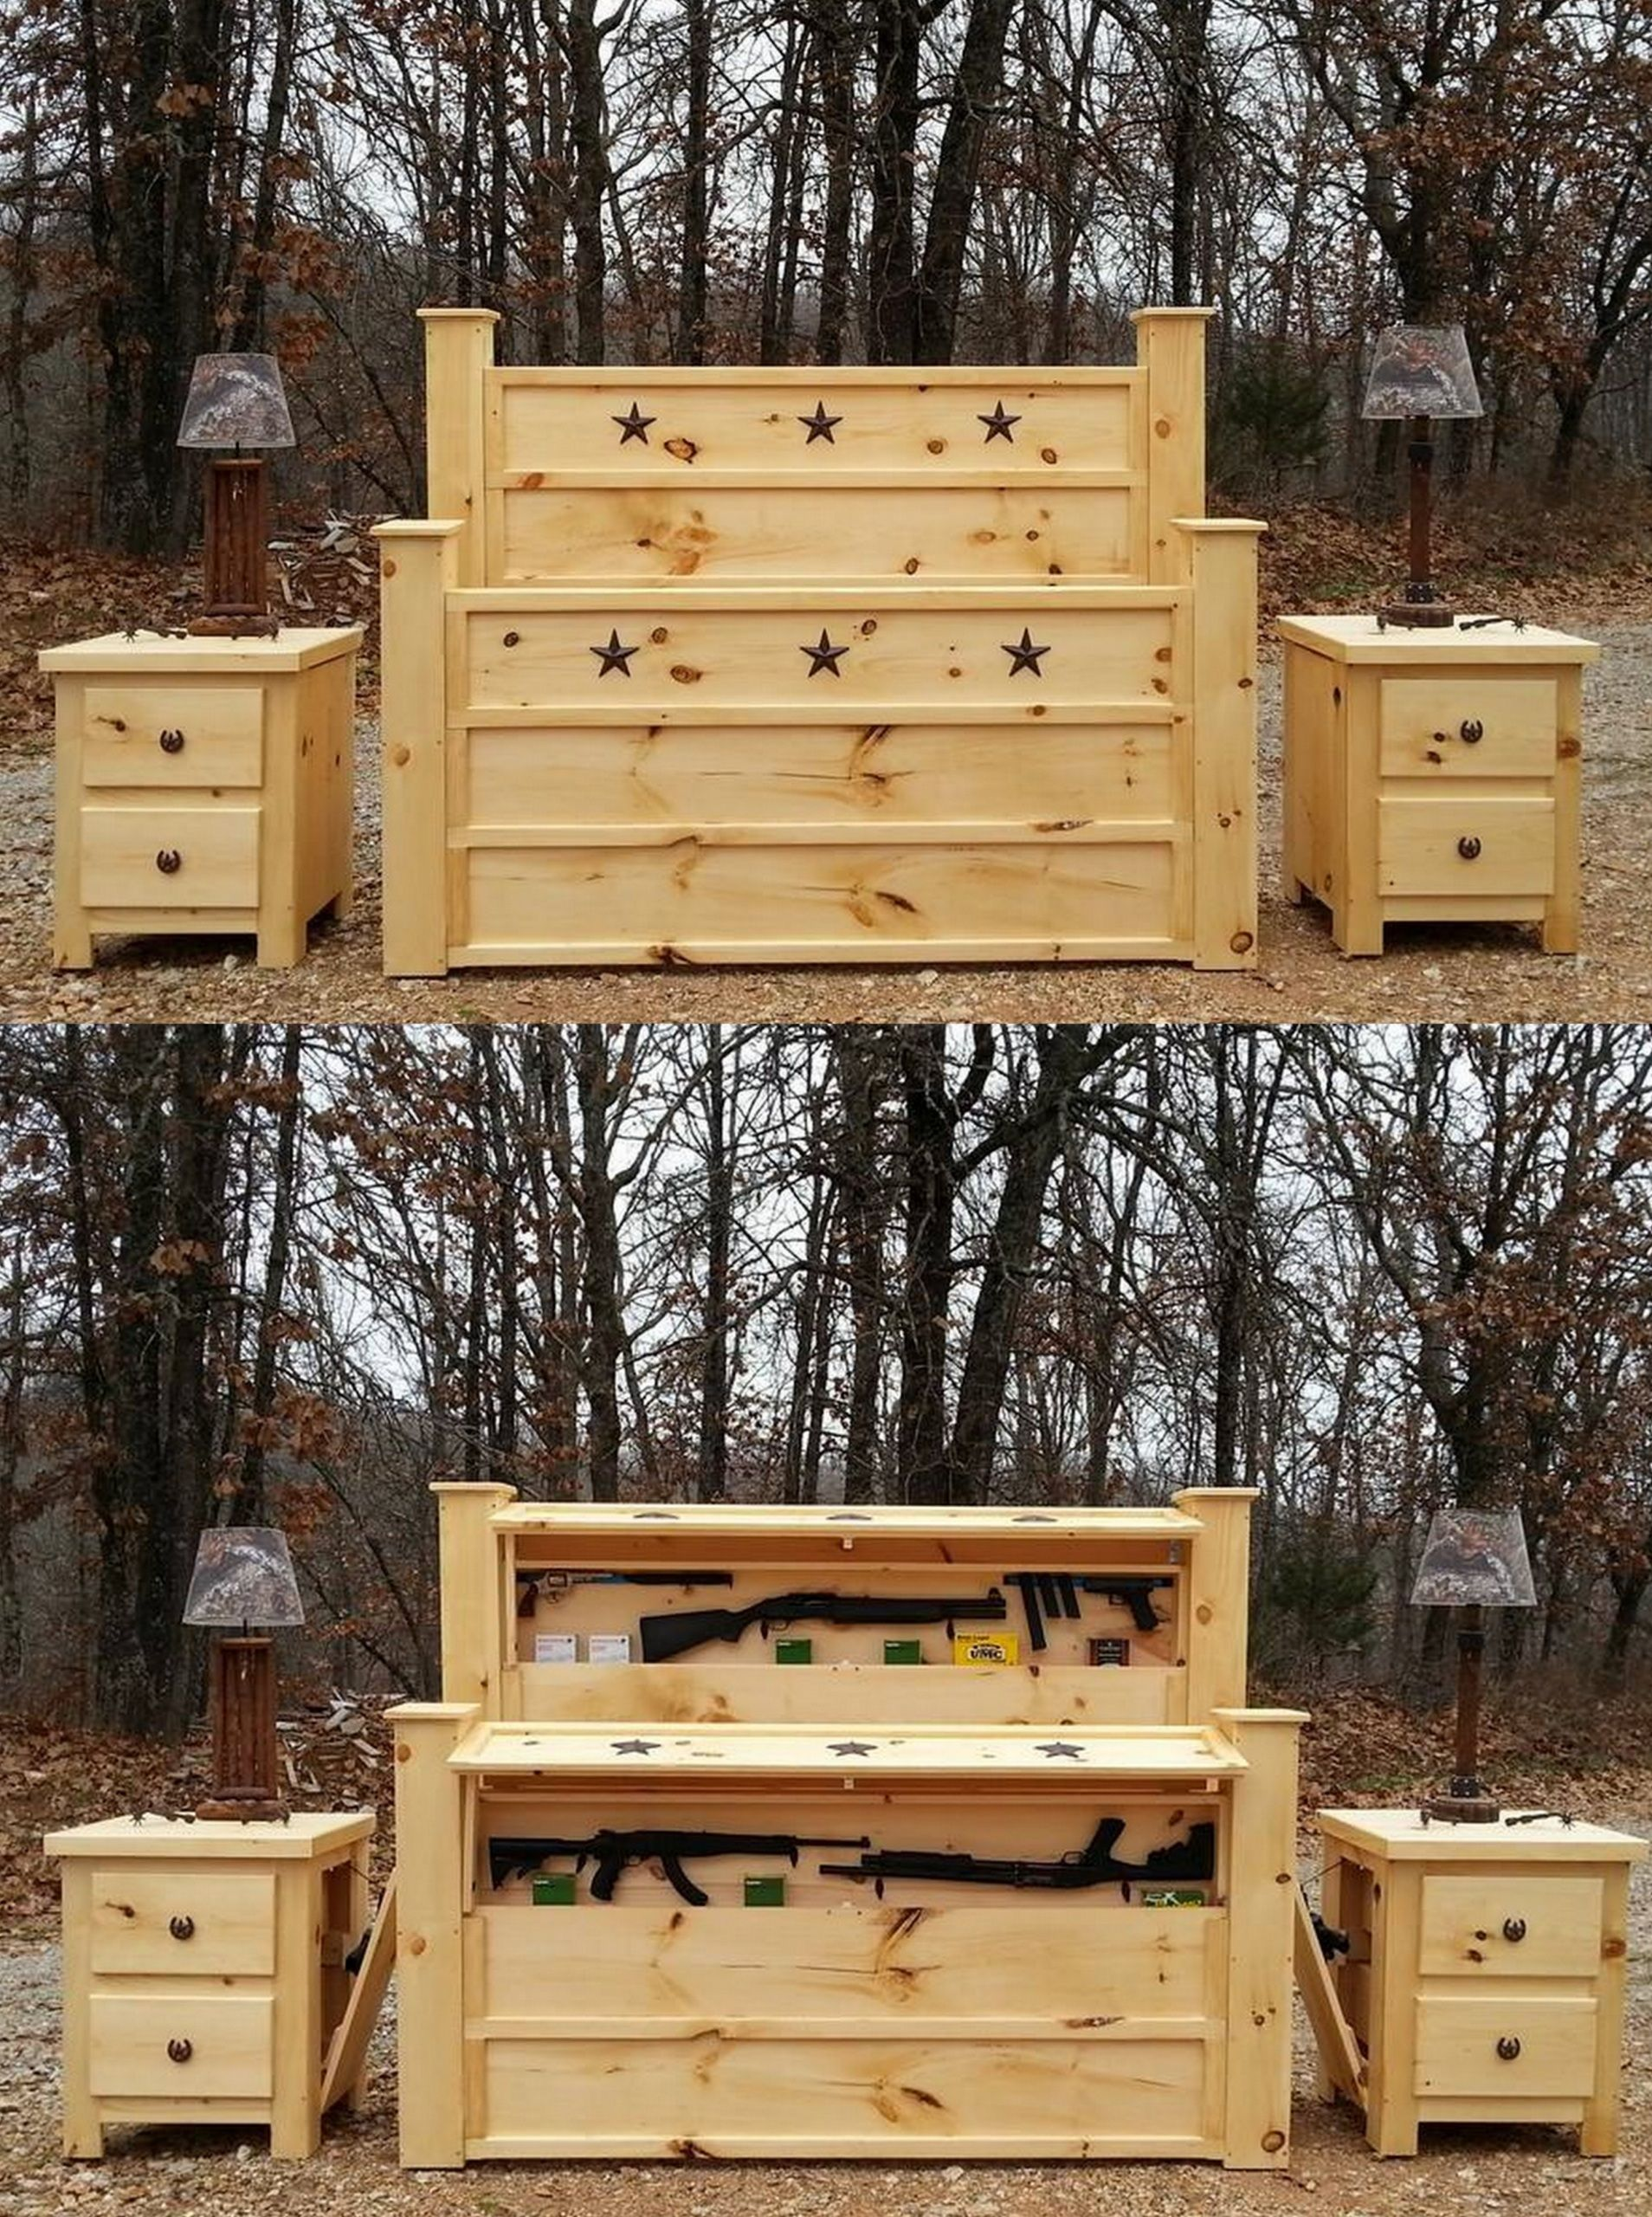 Handmade Rustic Furniture Hidden Compartment Furniture Secret - Bedroom furniture with hidden compartments